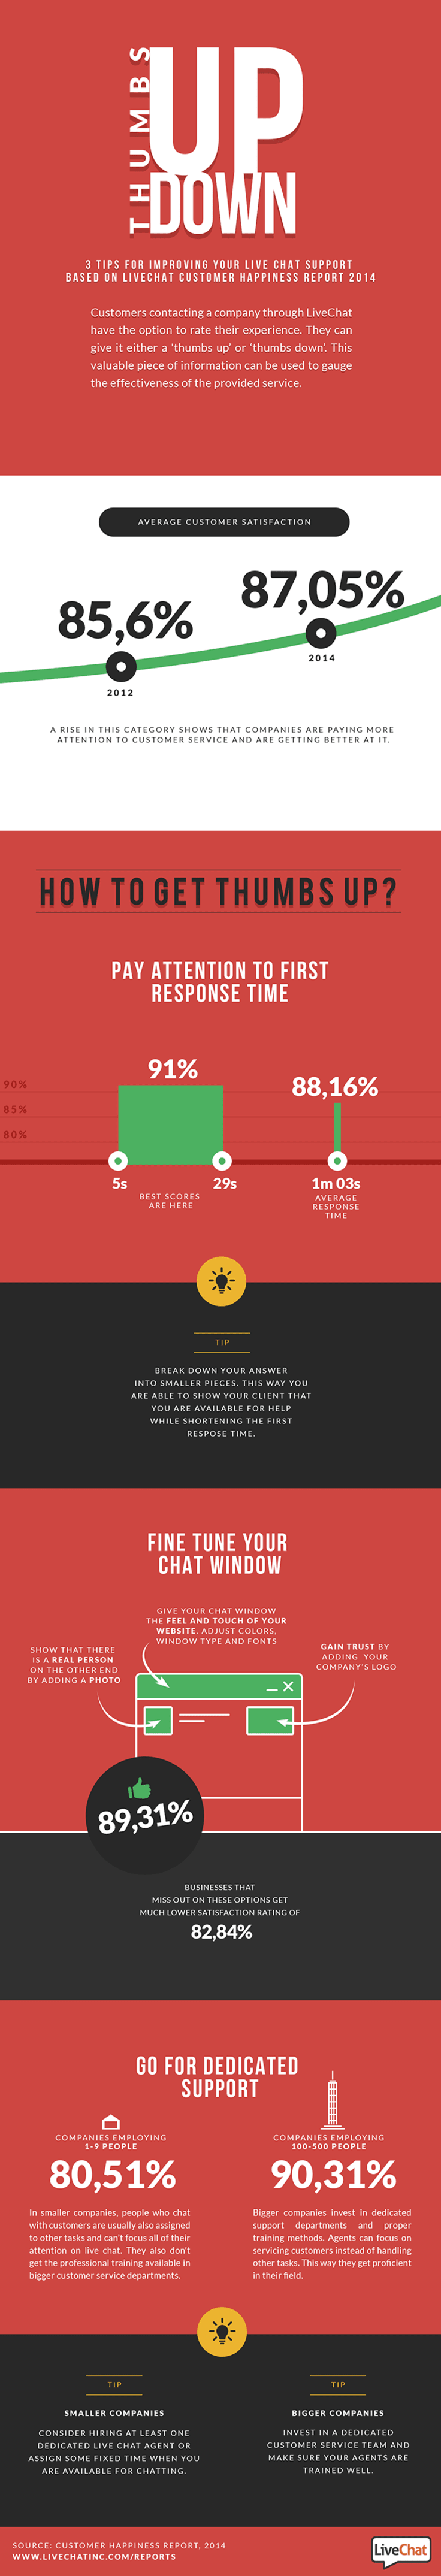 Customer Happiness in Live Chat - Infographic